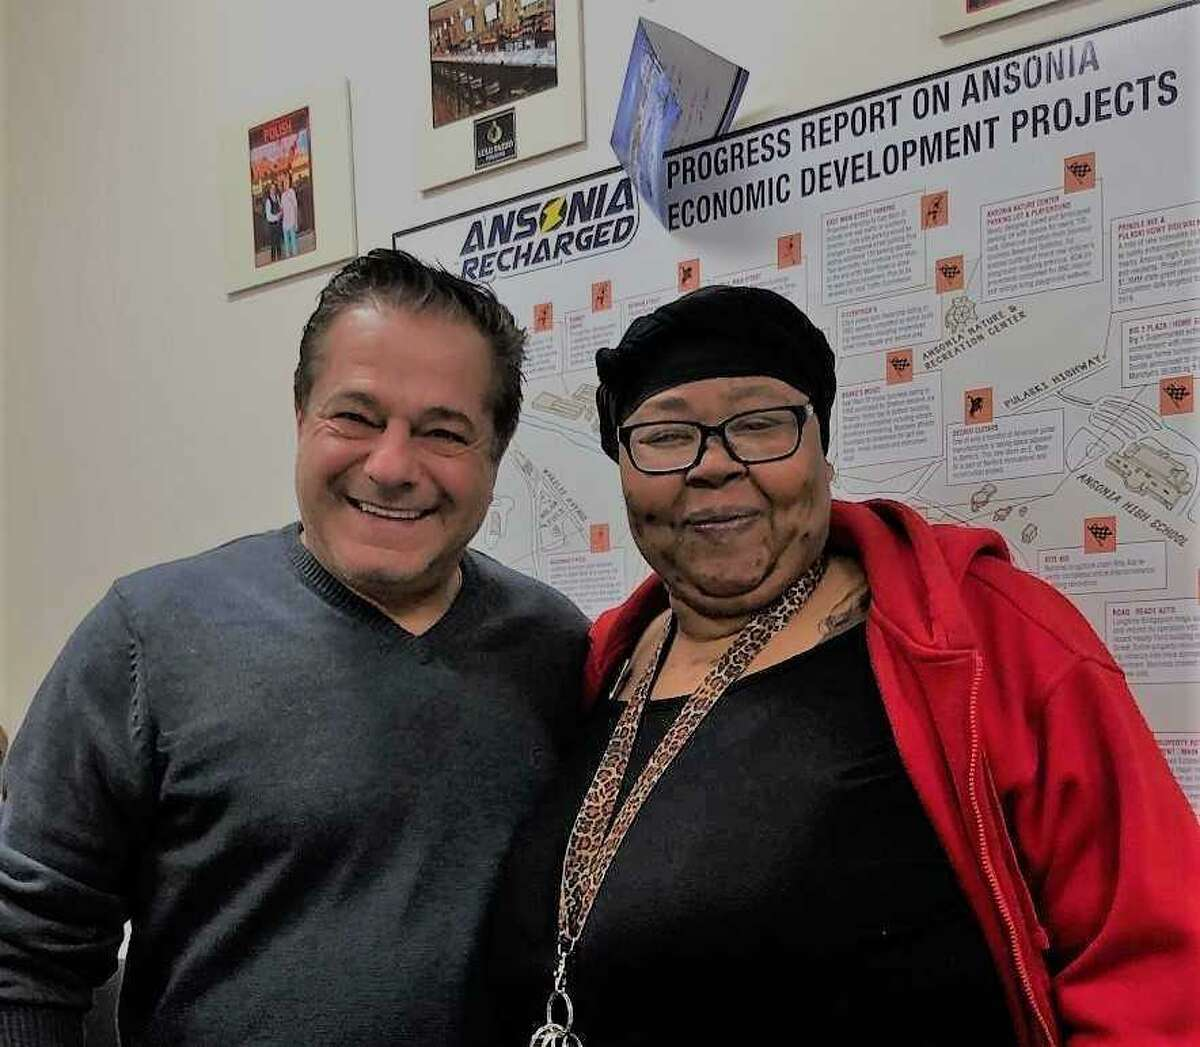 Ansonia Mayor David Cassetti and Lakesha Stines, who is poised to launch 'Sober Touch Sensoring' to prevent drunken driving.